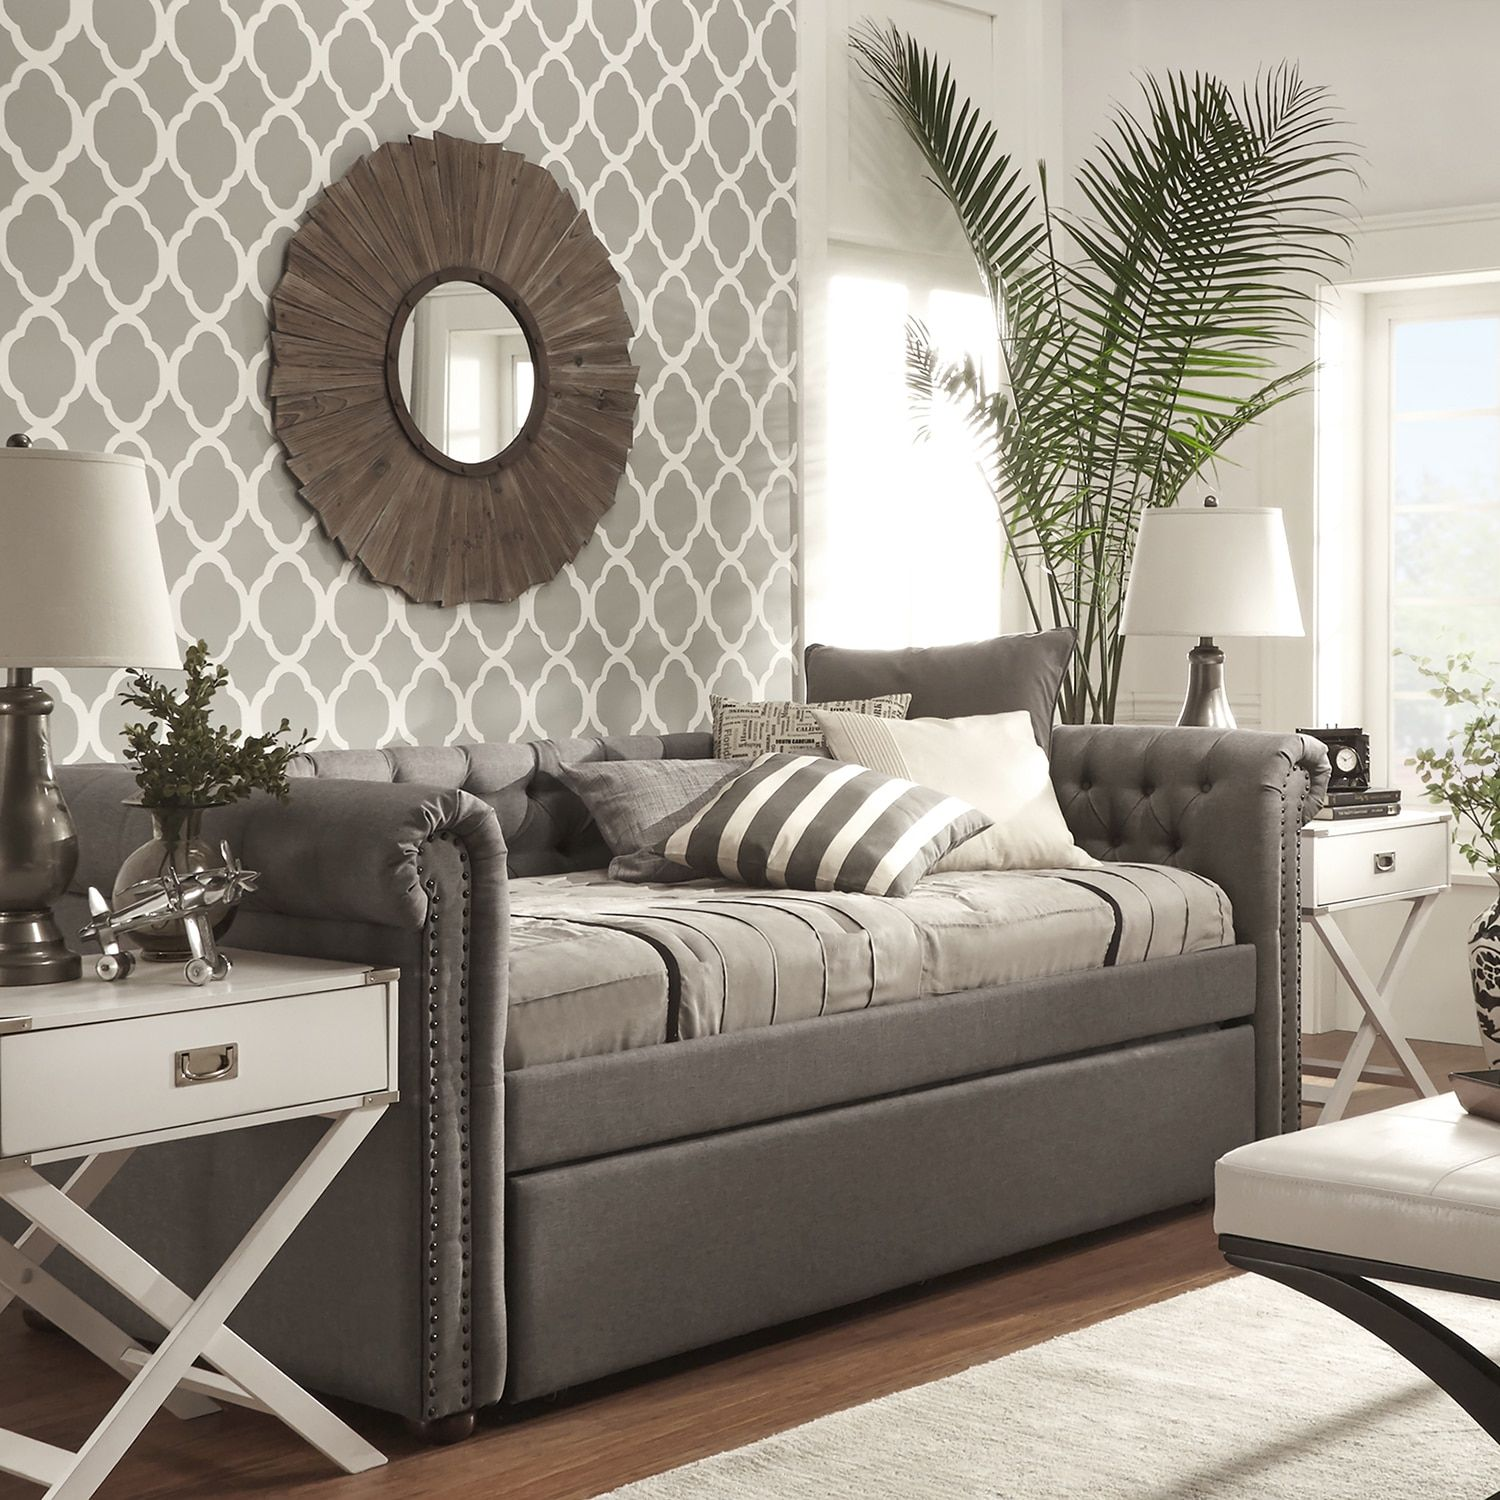 SIGNAL HILLS Knightsbridge Tufted Scroll Arm Chesterfield Daybed